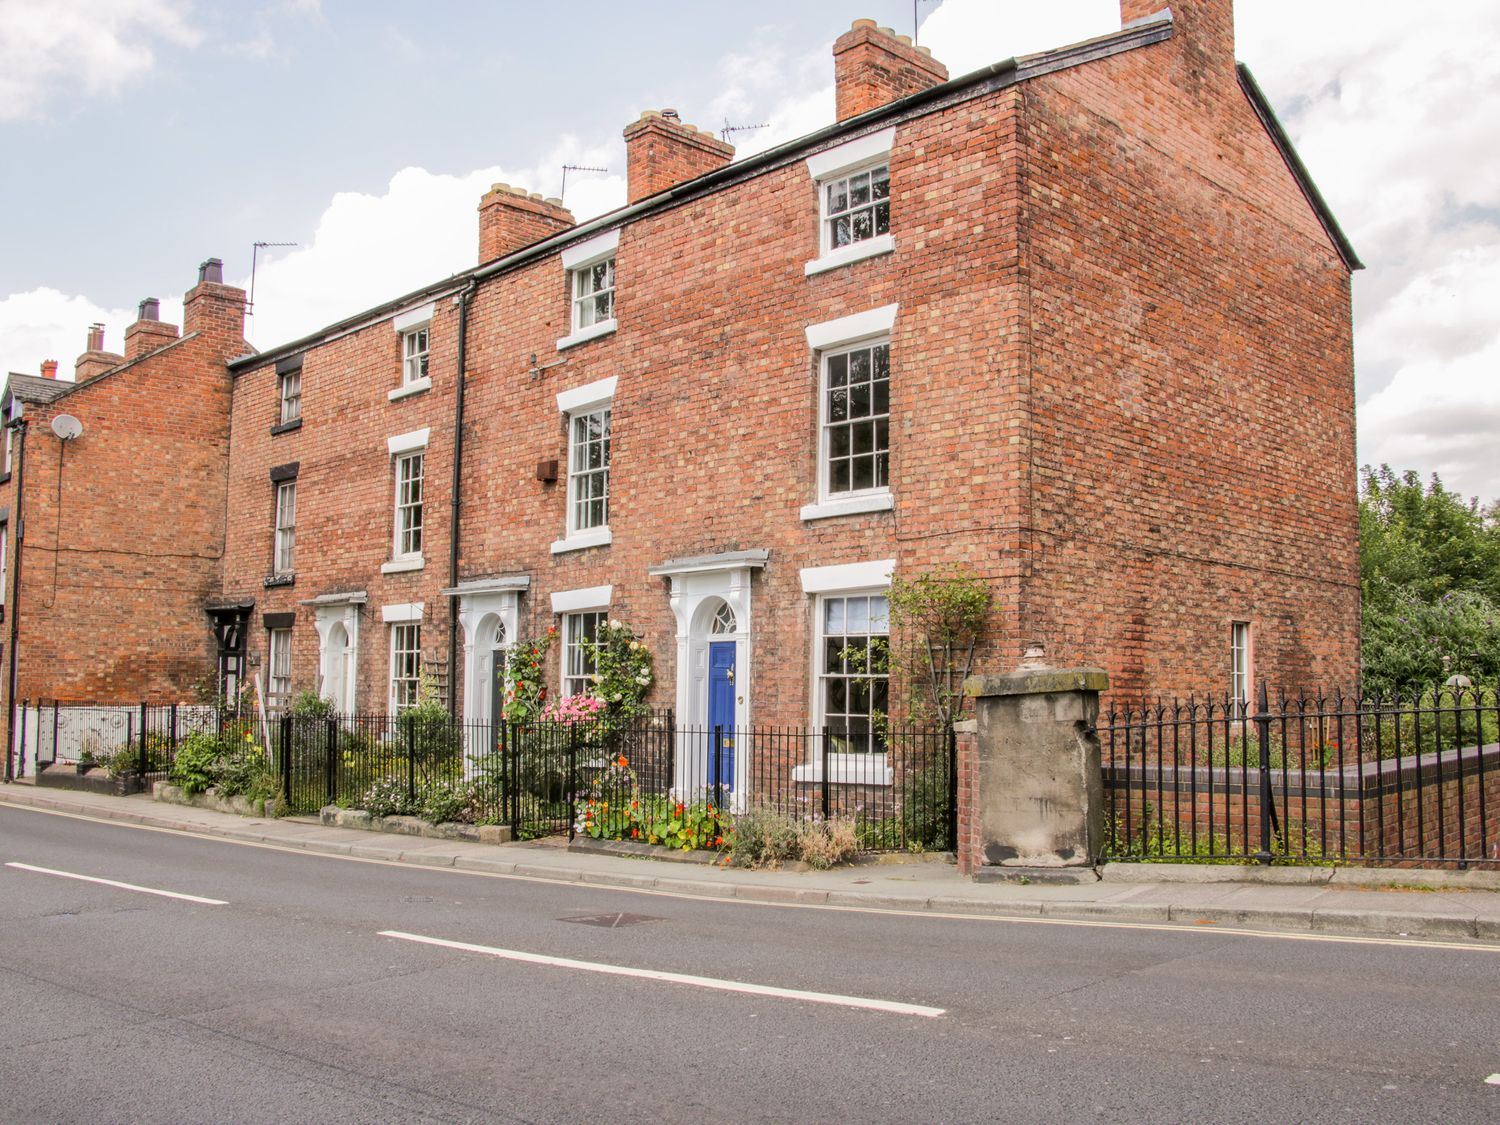 1 Reabrook Place - Shropshire - 989940 - photo 1